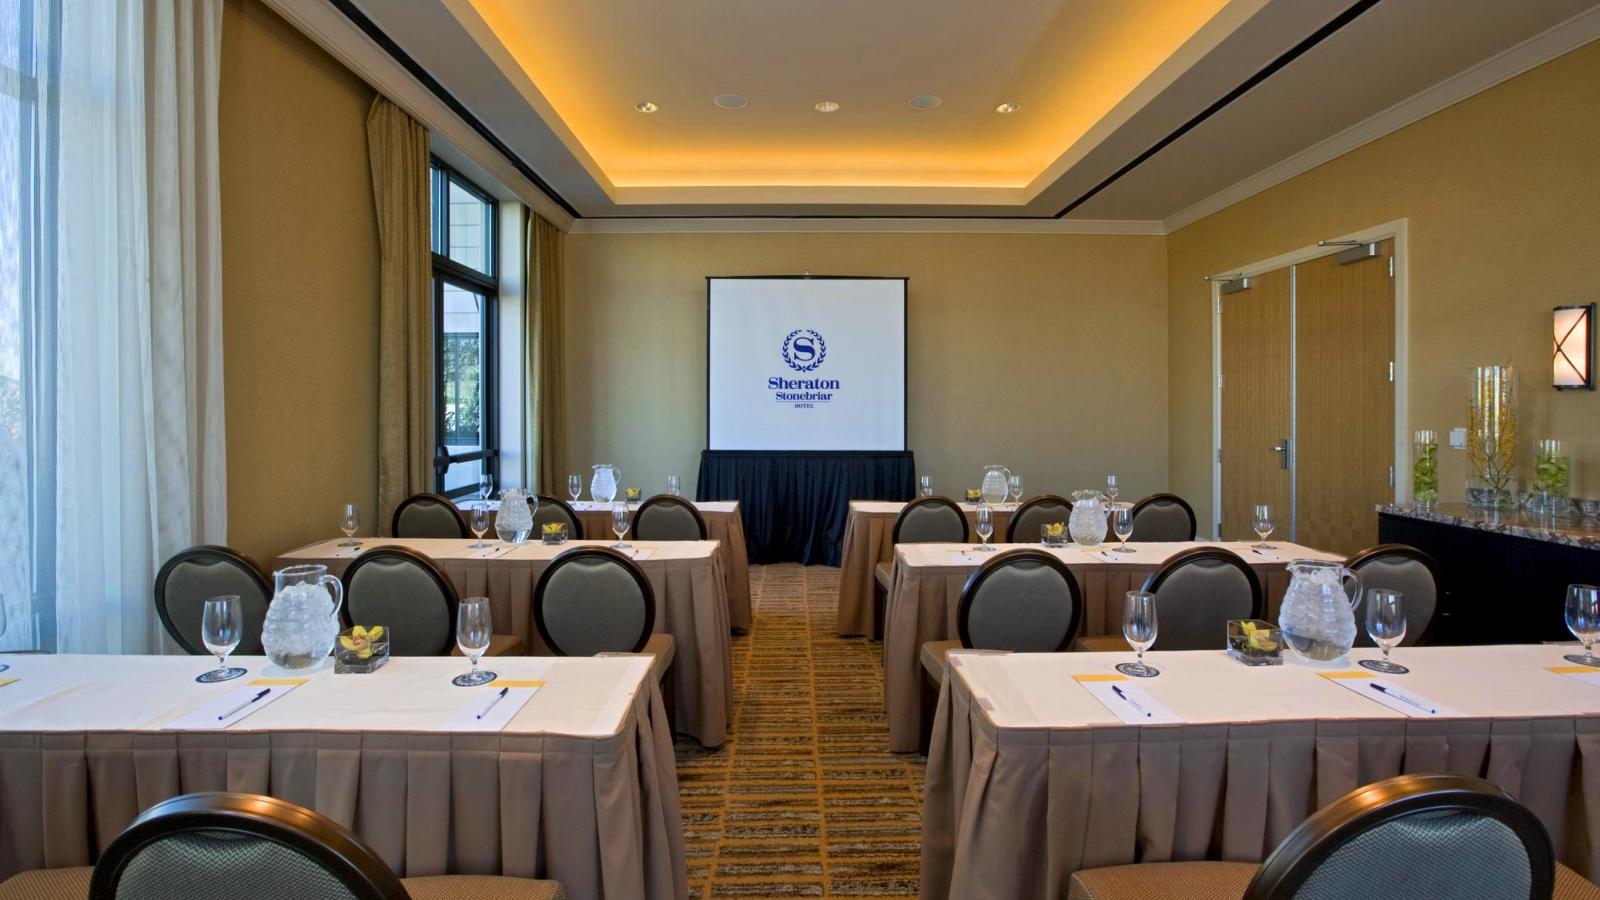 Sheraton Stonebriar Hotel - Meeting Space